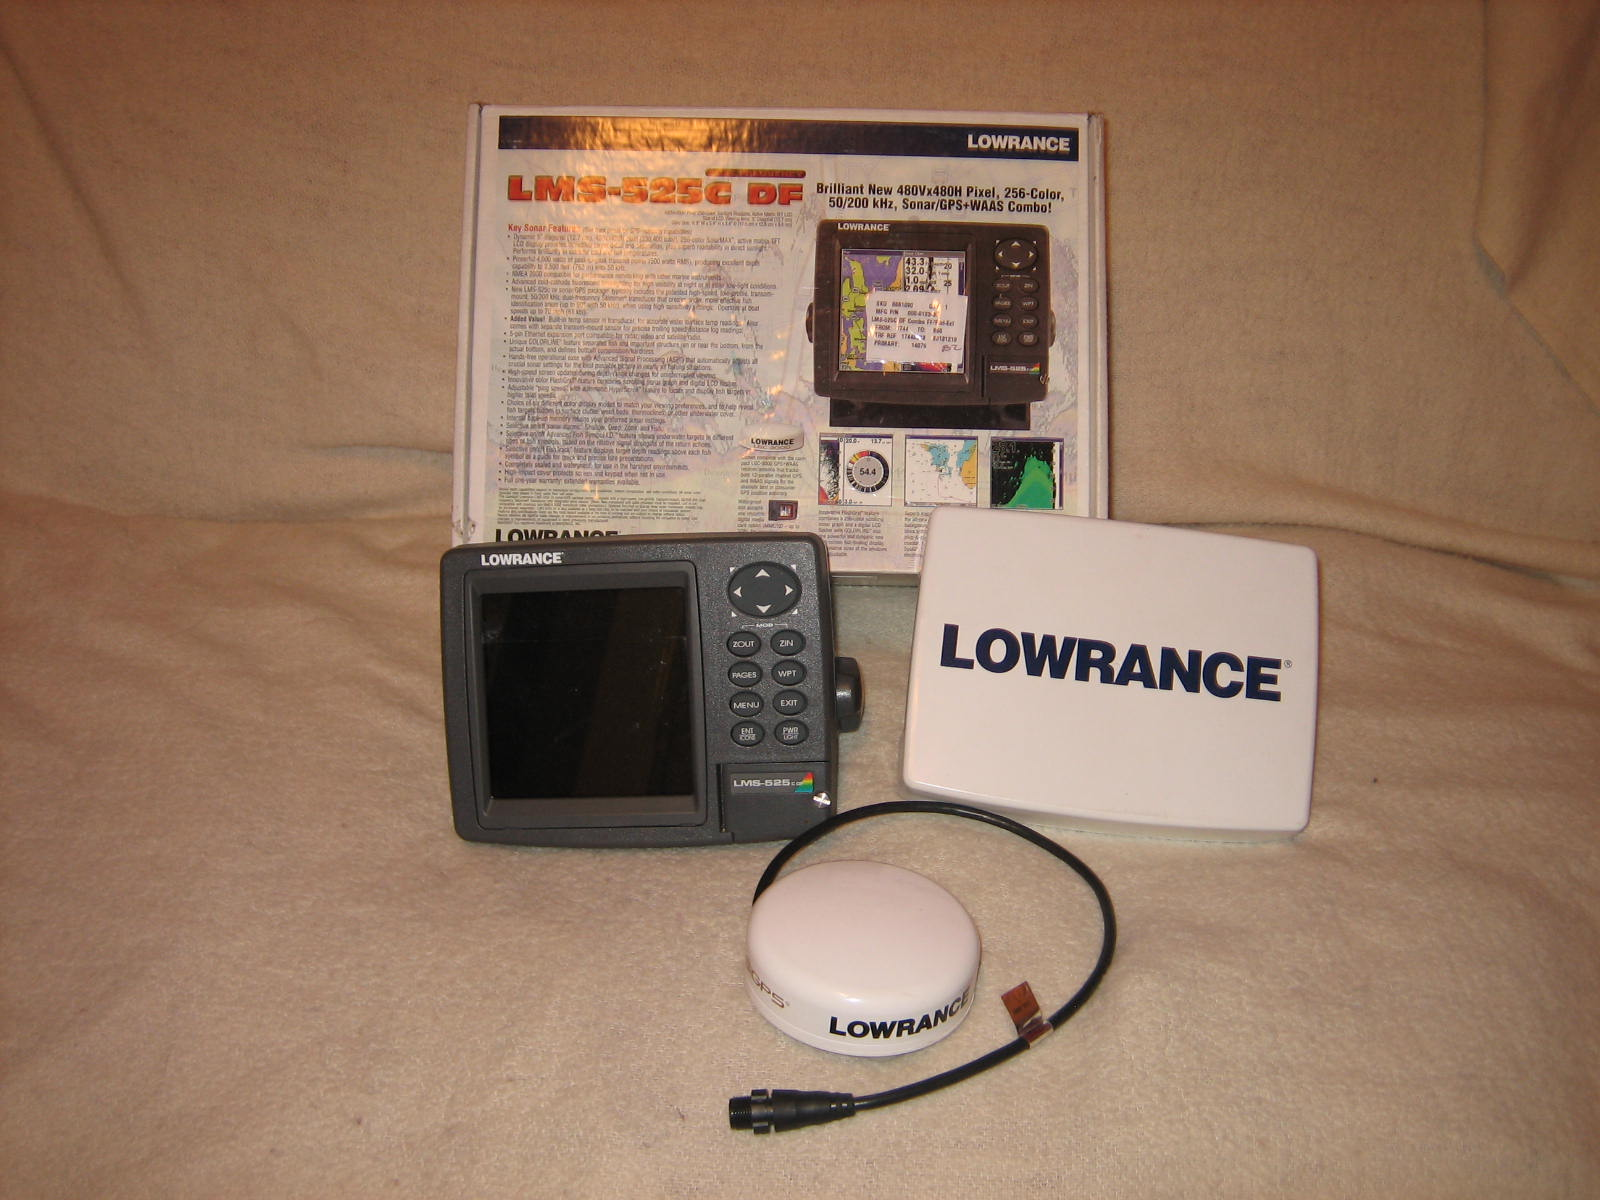 pensacola fishing forum - view single post - lowrance lms 525 df, Fish Finder